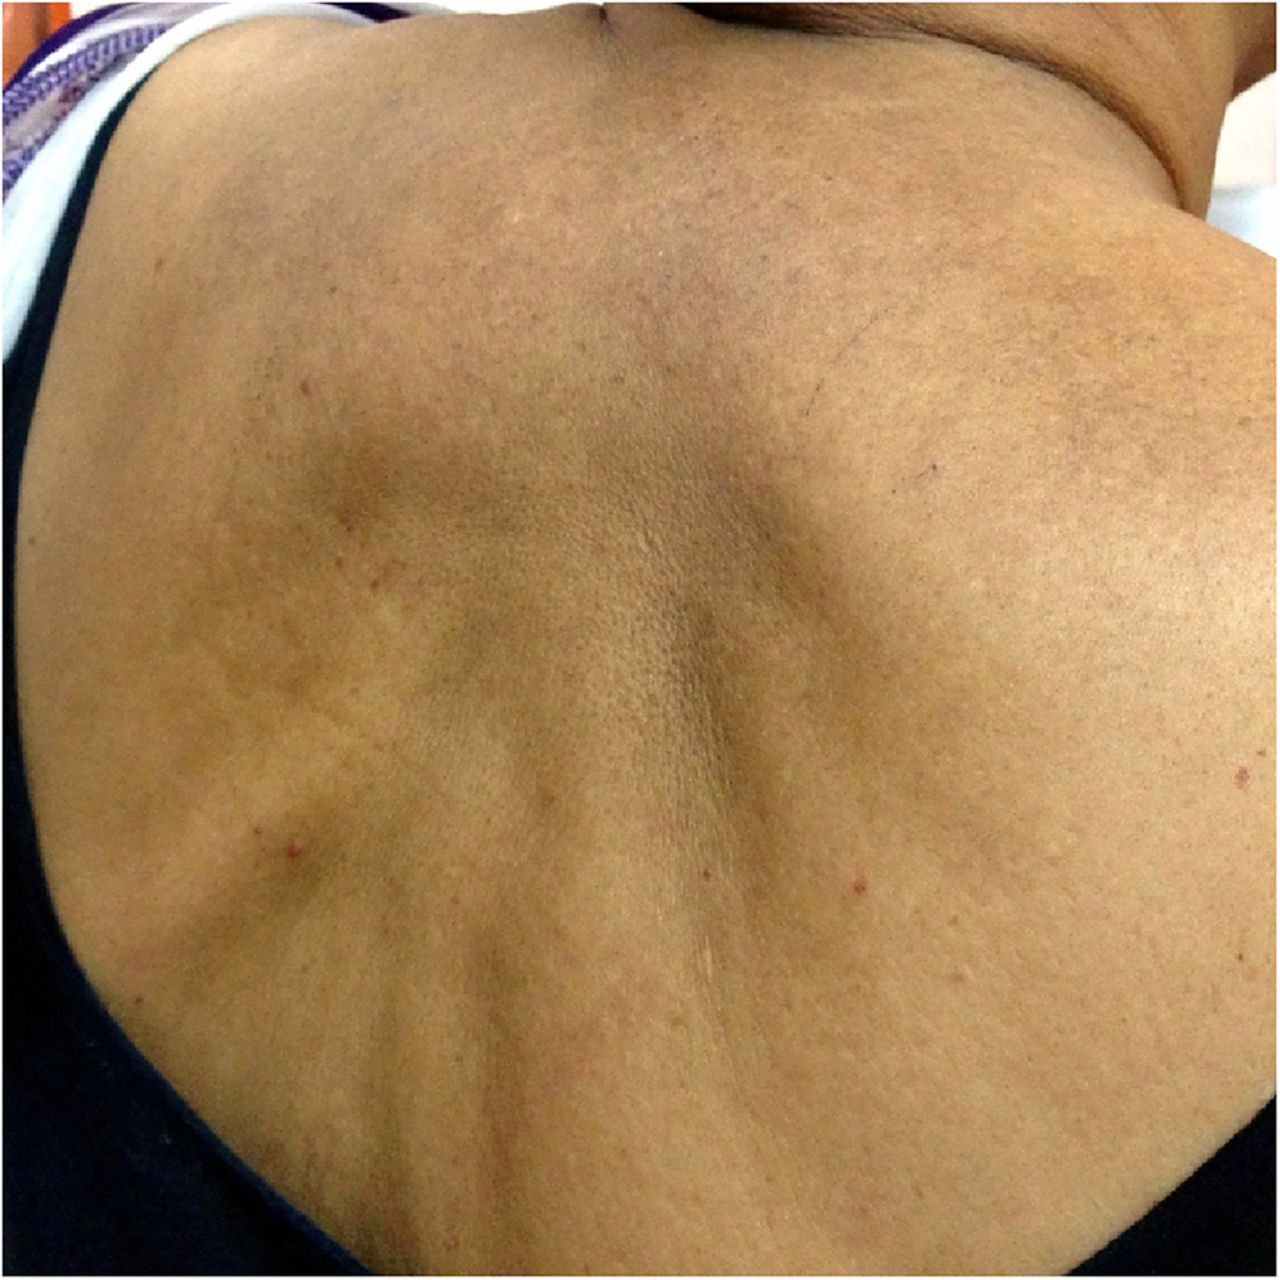 Insulin Injection Sites For Women: Distant Site Lipoatrophy: A Rare Complication Of